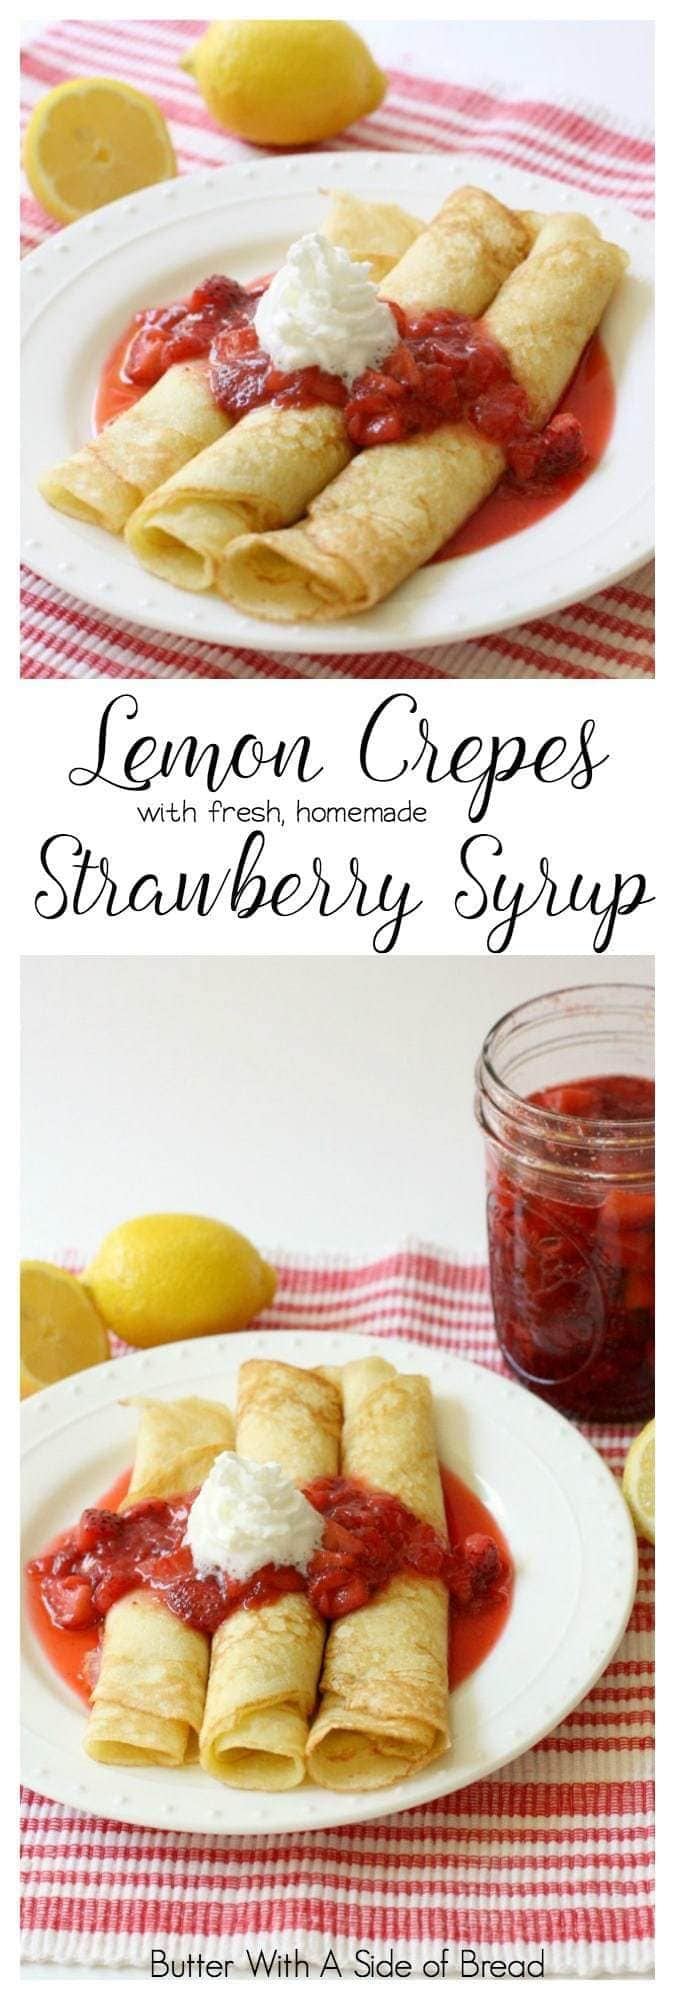 We love crepes at our house and when I found this fantastic recipe for fresh strawberry syrup, I knew I wanted to pair them with lemon crepes. It was delicious combination and everyone loved it. It was easy enough to make as far as crepes go, but they looked so pretty, you could easily serve them to guests.